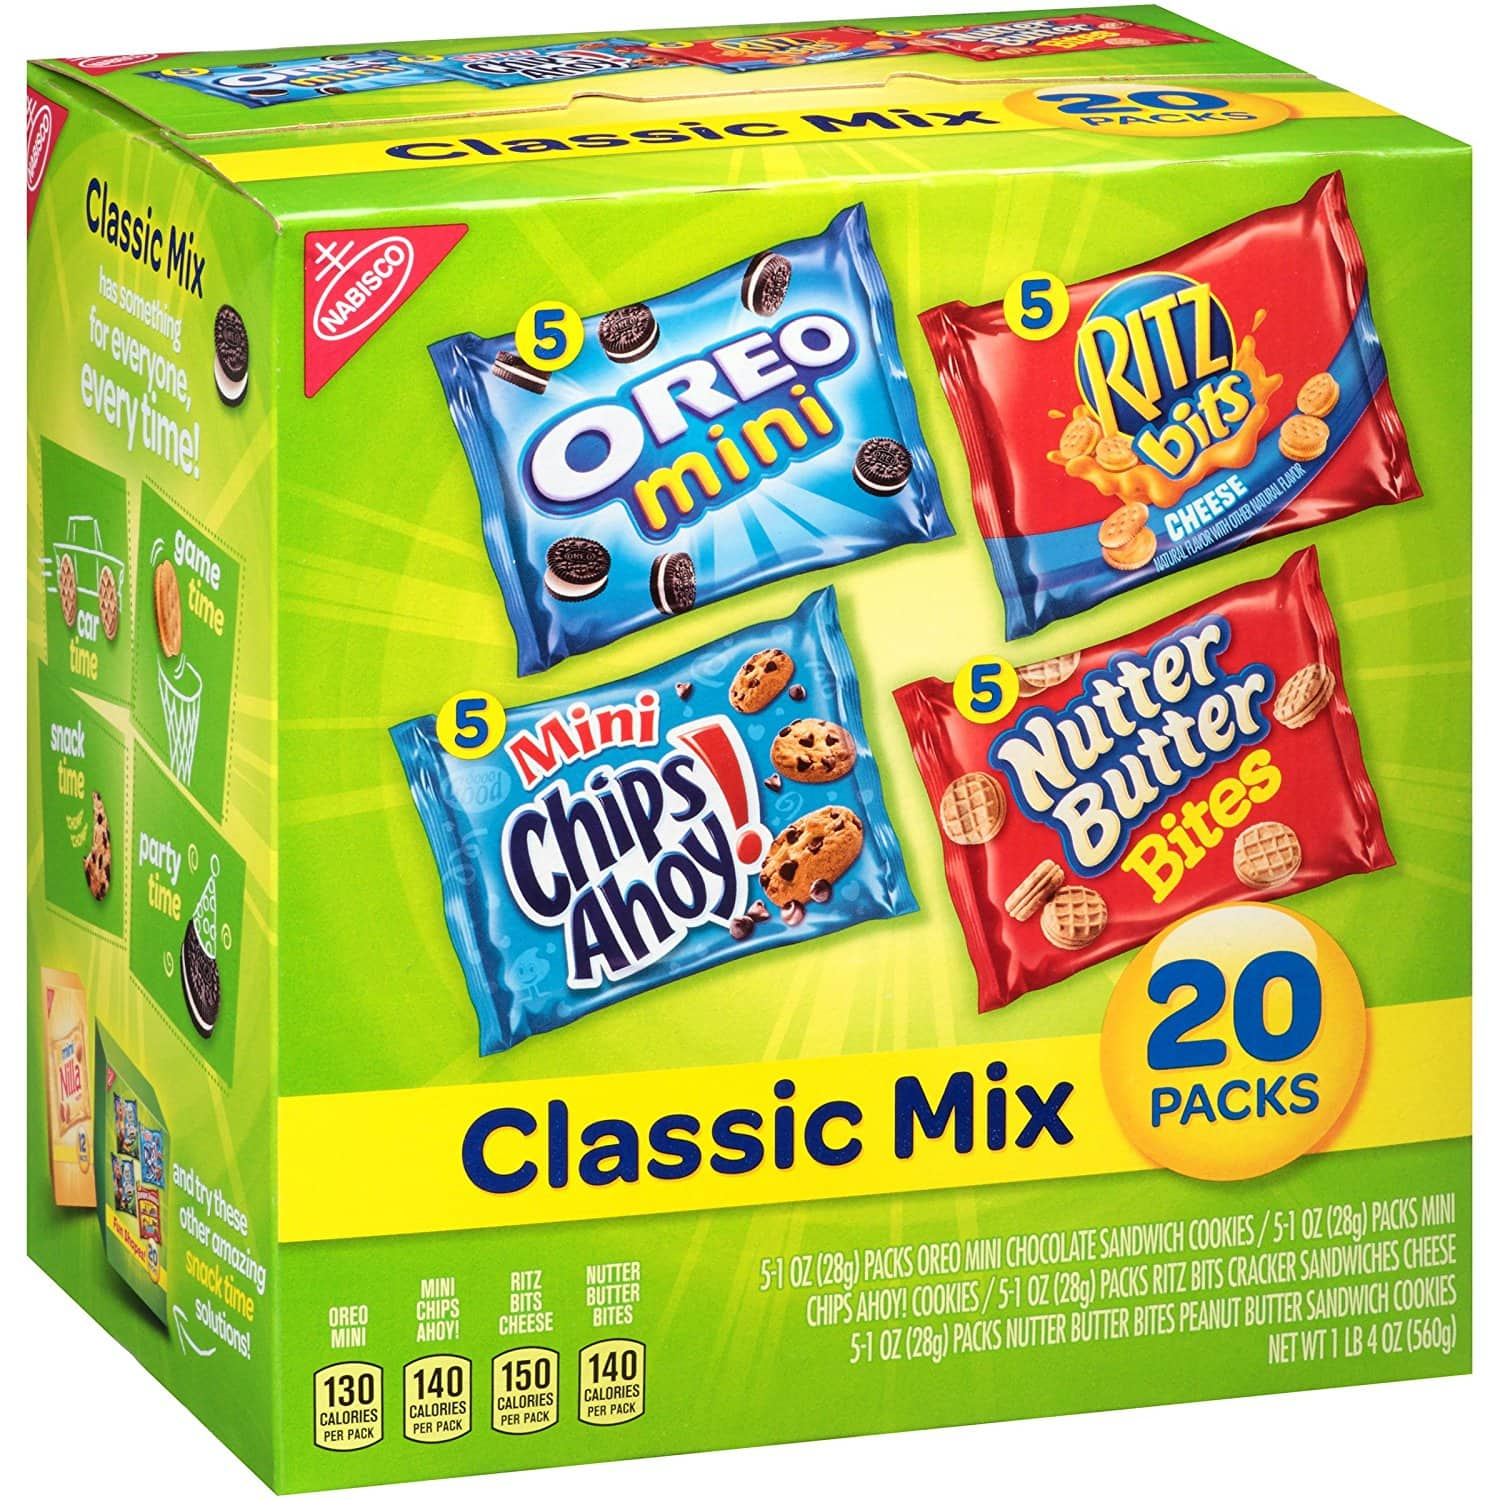 Amazon.com has Nabisco Classic Cookie and Cracker Mix (20-Count Box) S&S - $6.09 + Free Shipping!